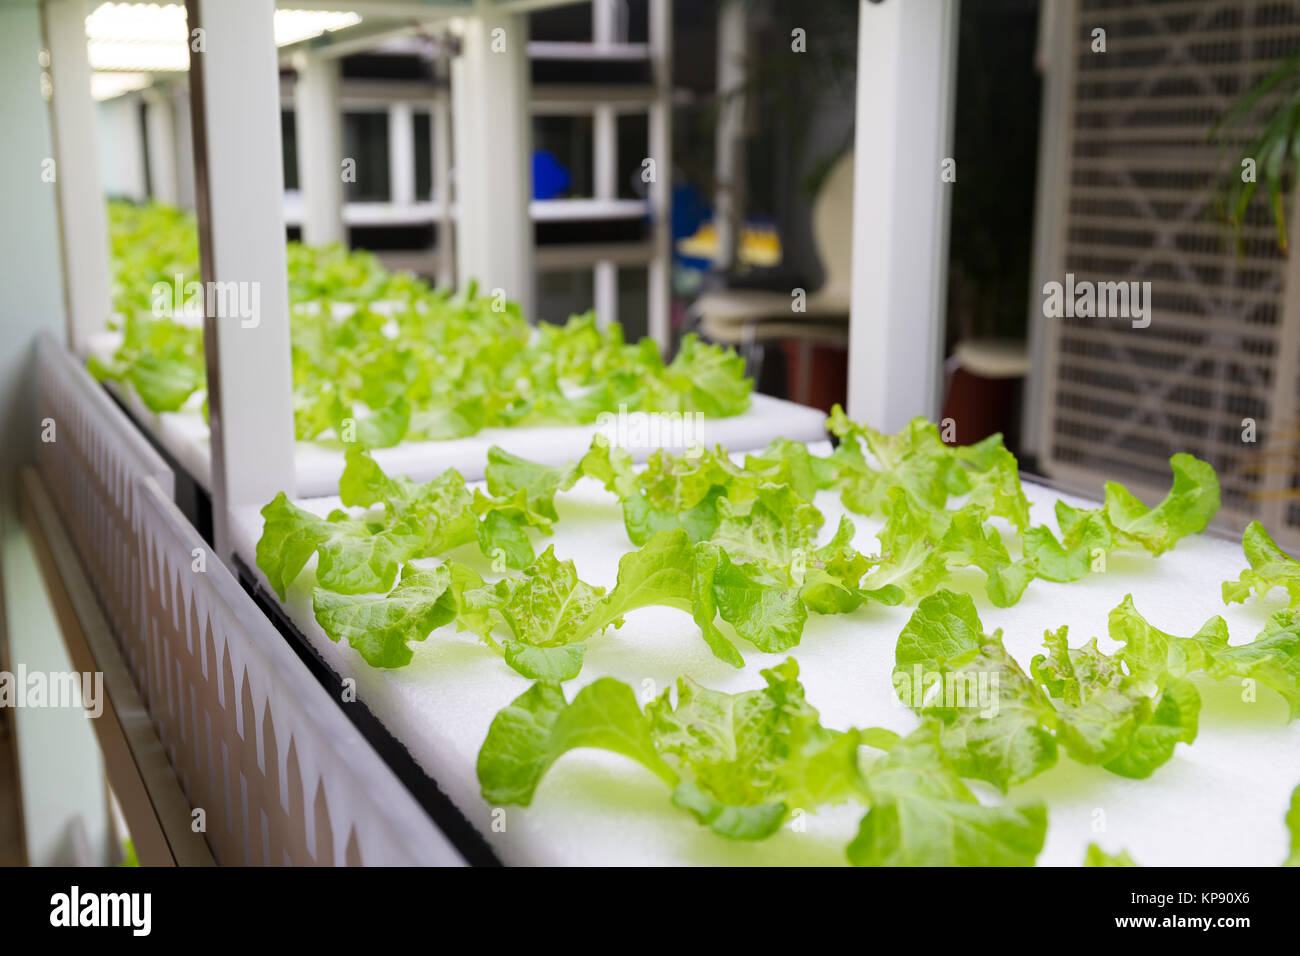 Plants cultivated in hydroponic system Stock Photo